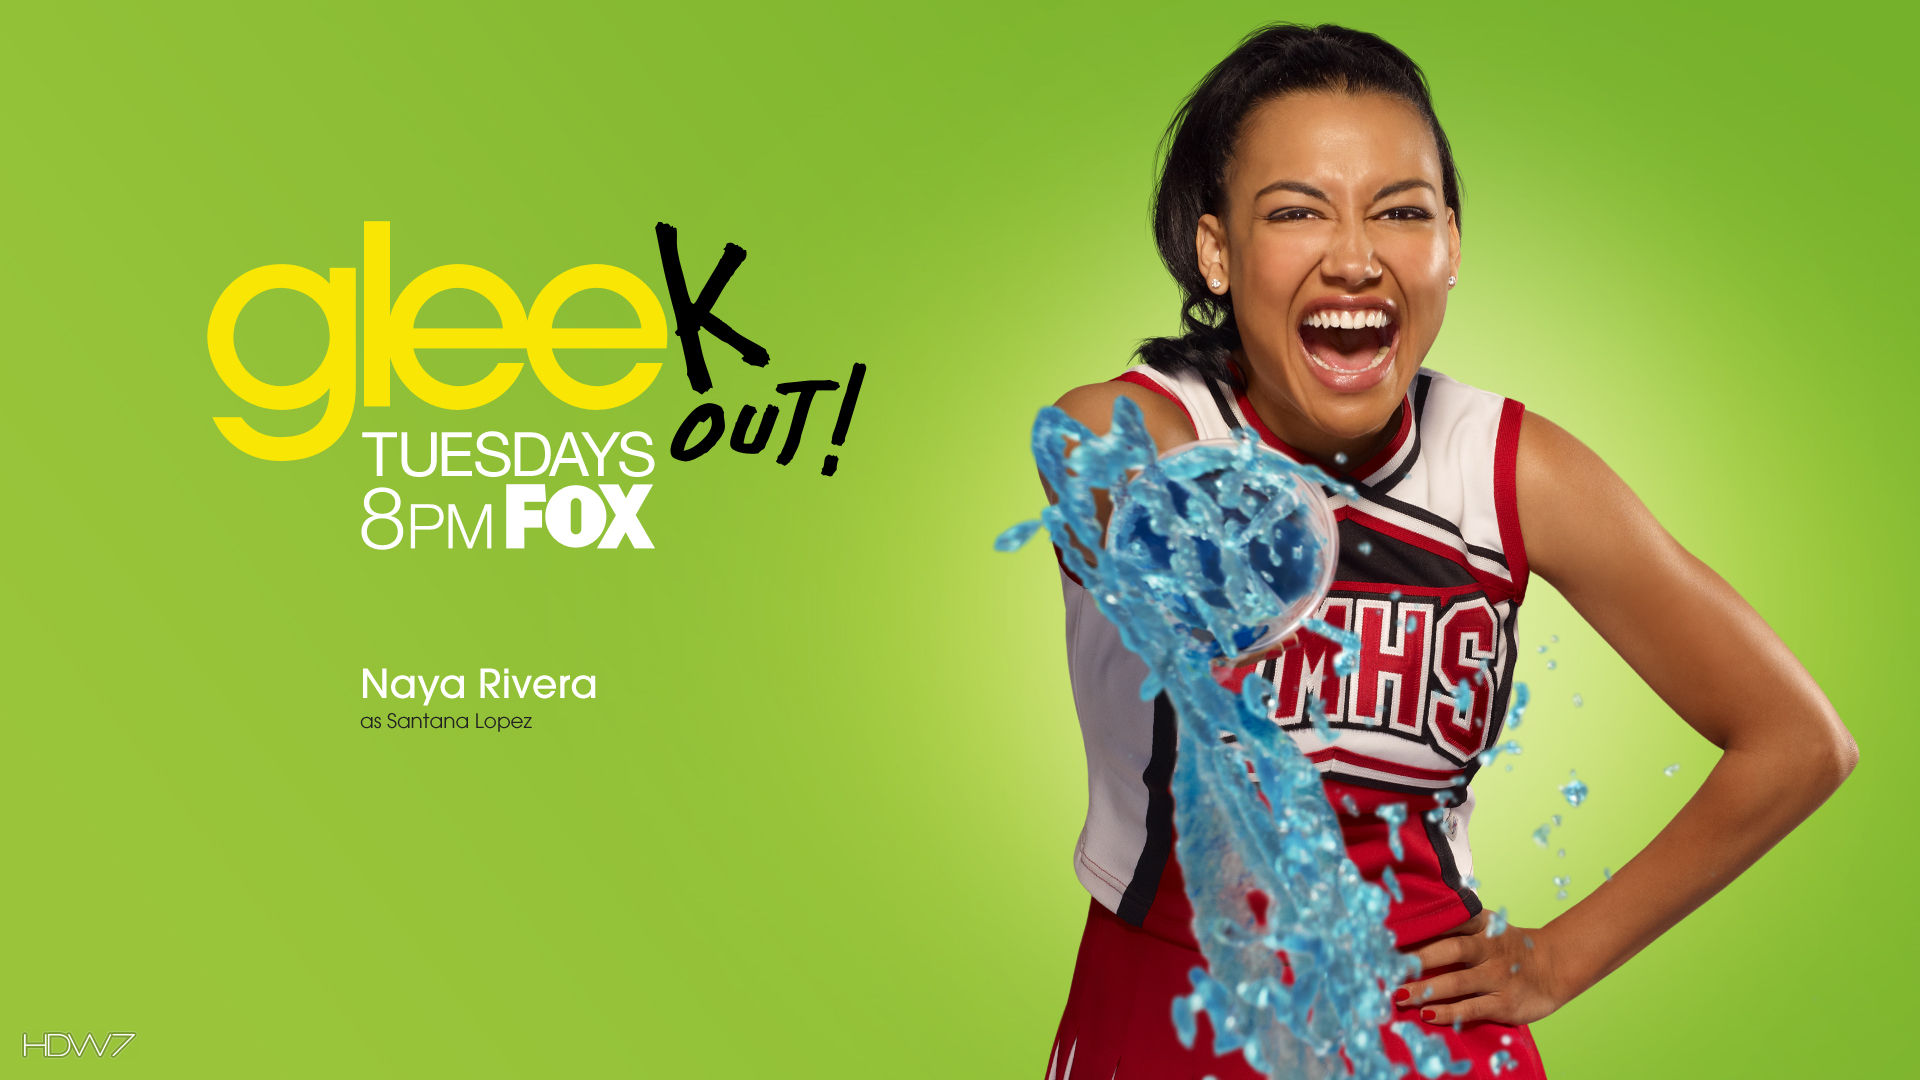 Glee wallpaper naya rivera santana lopez 1920x1080 hd wallpaper glee wallpaper naya rivera santana lopez 1920x1080 voltagebd Image collections